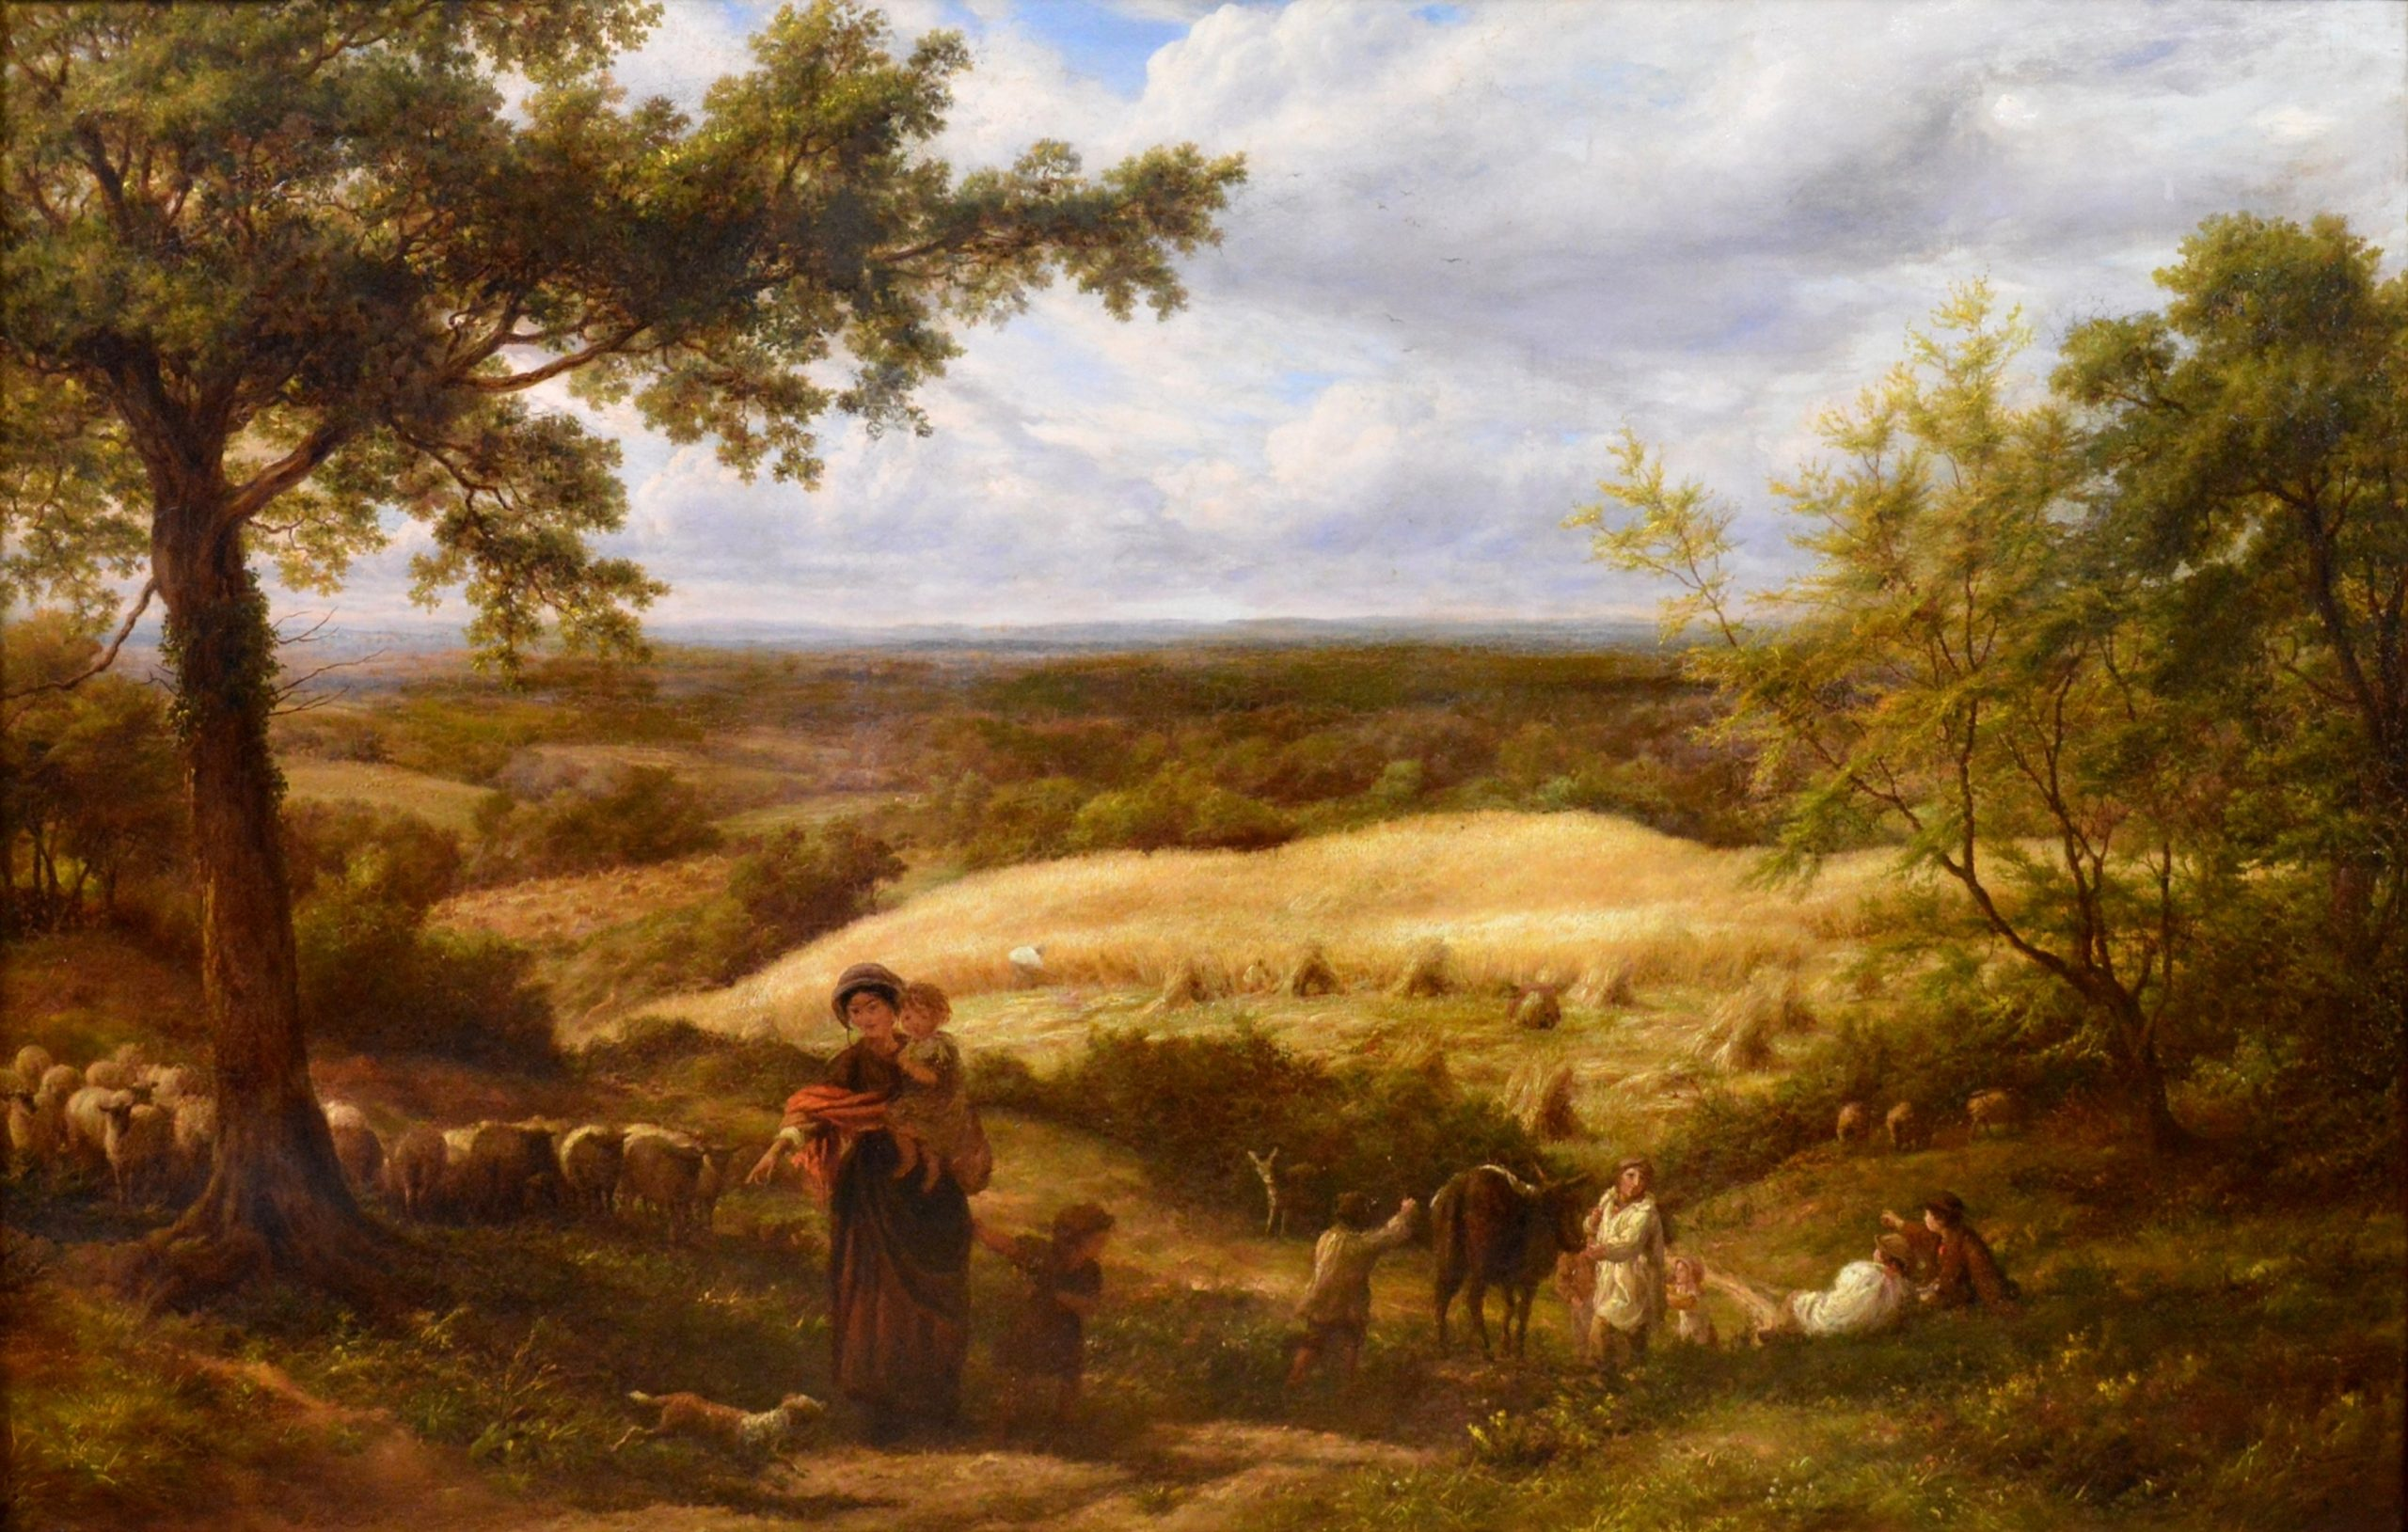 Reaping - Very Large 19th Century Royal Academy Landscape Oil Painting Image